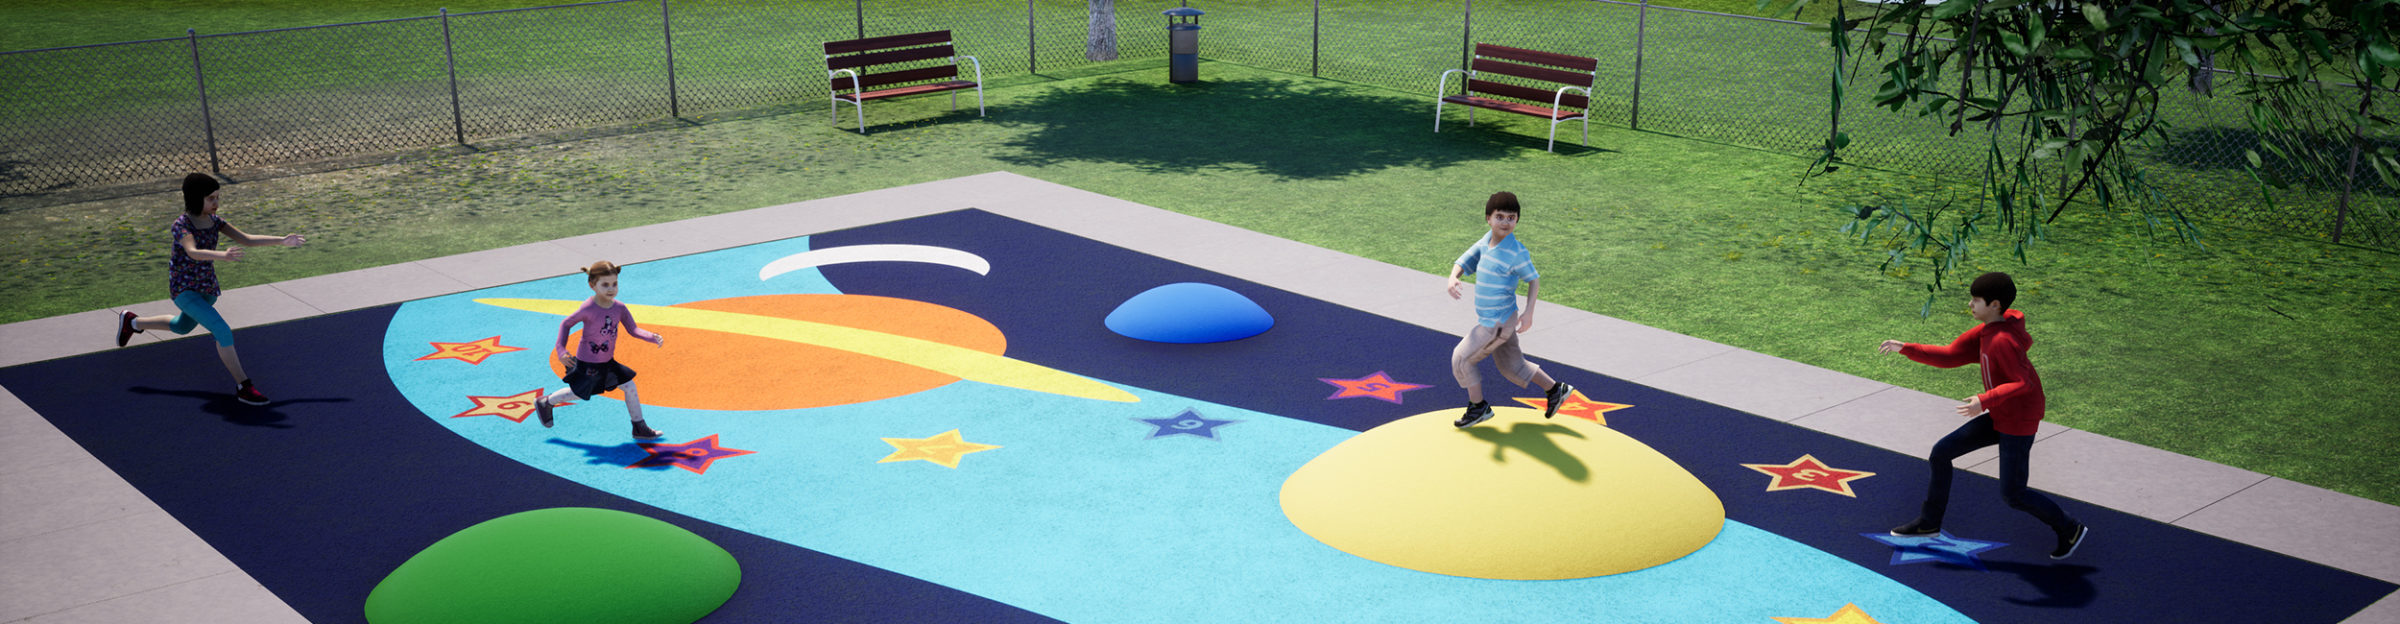 Funscapes Play Space: Galaxy